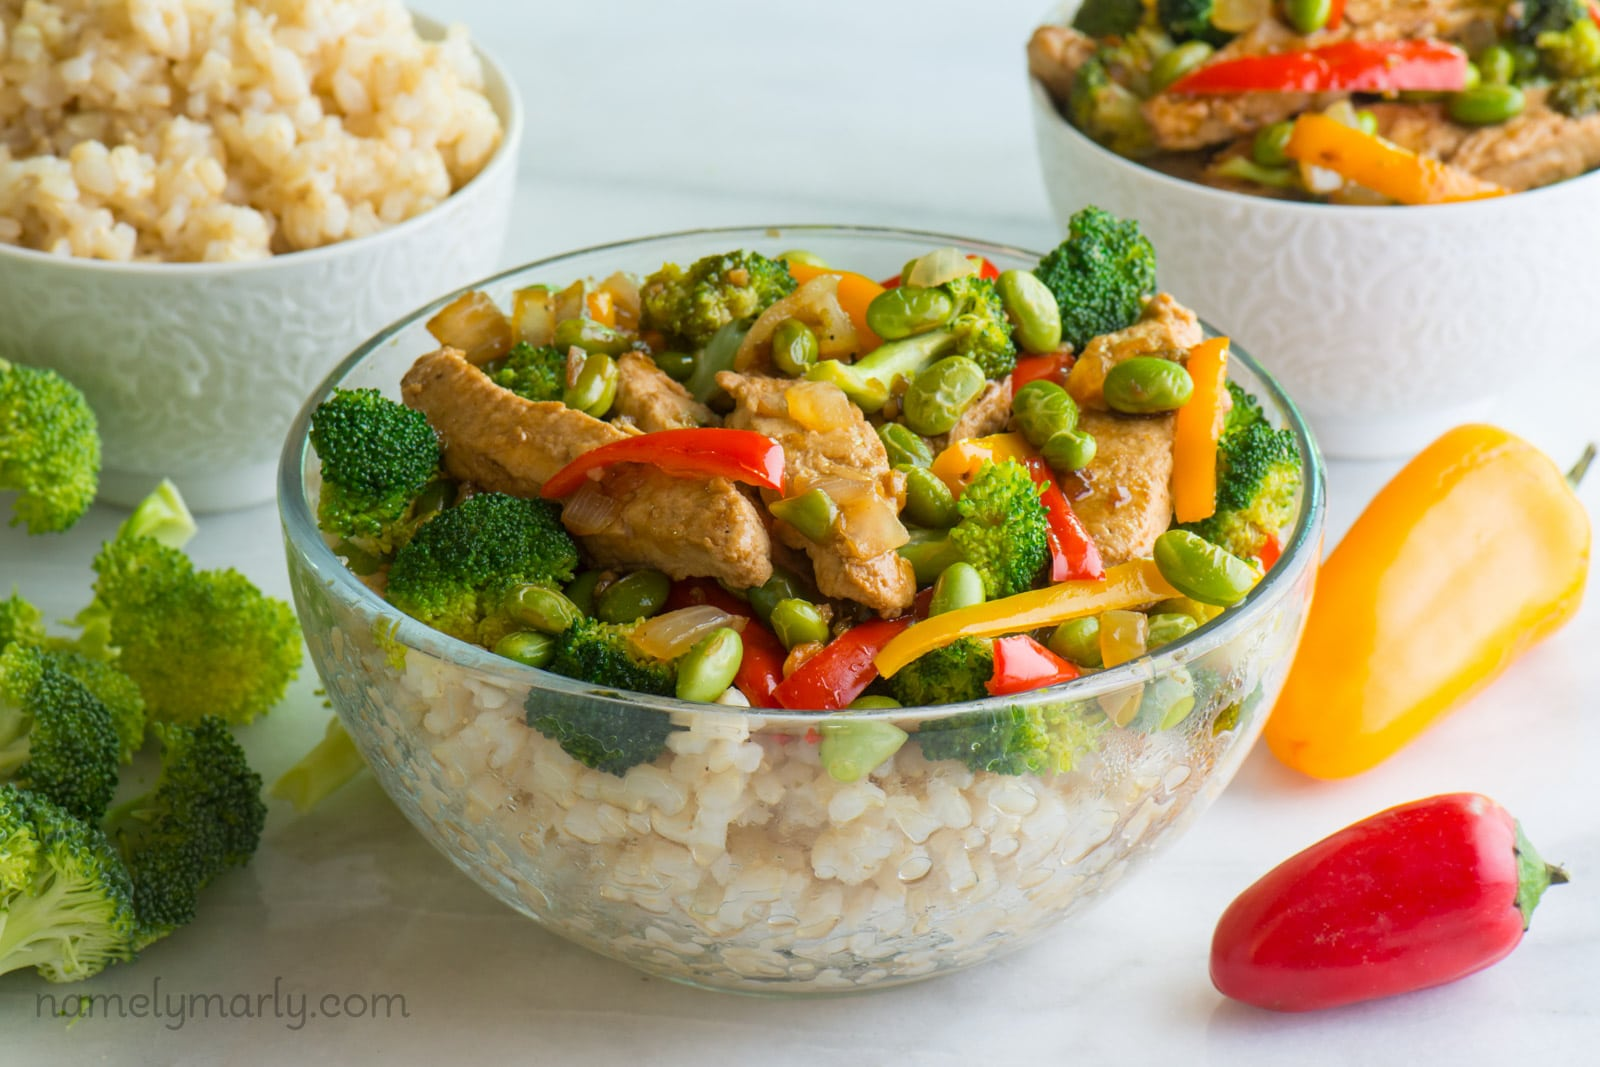 Vegan Teriyaki Chicken and Edamame Rice Bowls